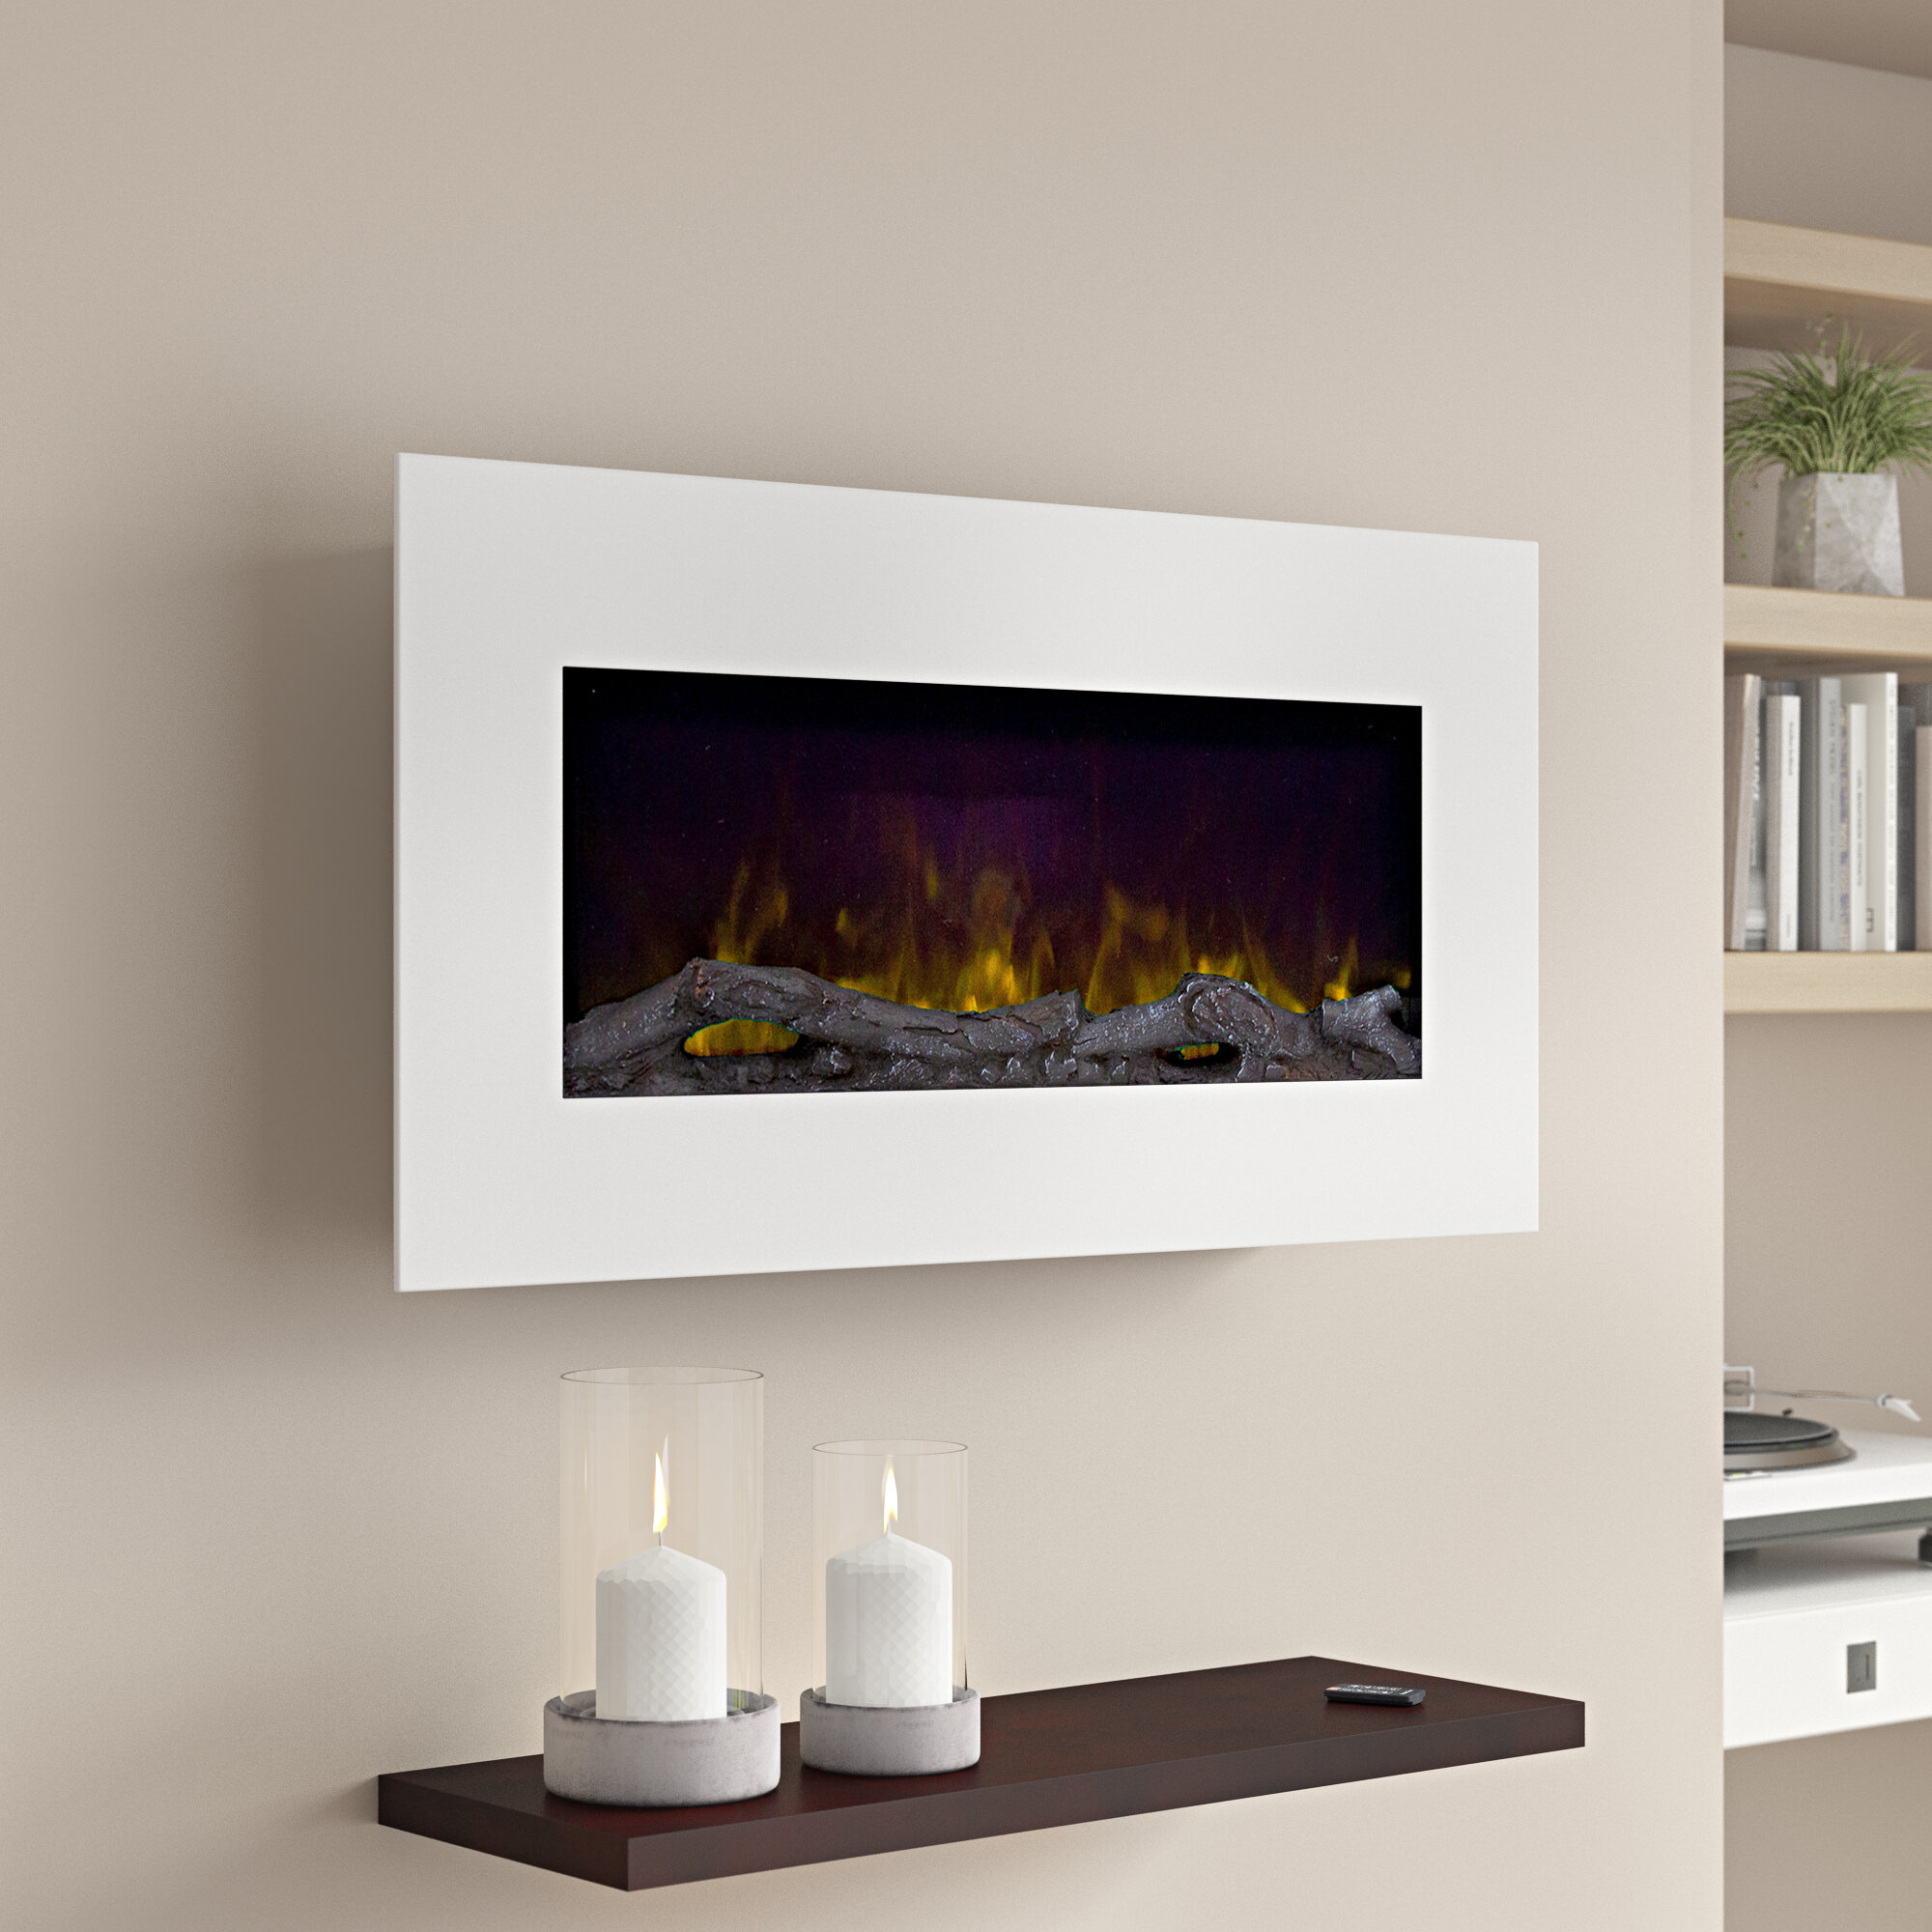 Fine Bedfo Led Wall Mounted Electric Fireplace Interior Design Ideas Gentotthenellocom